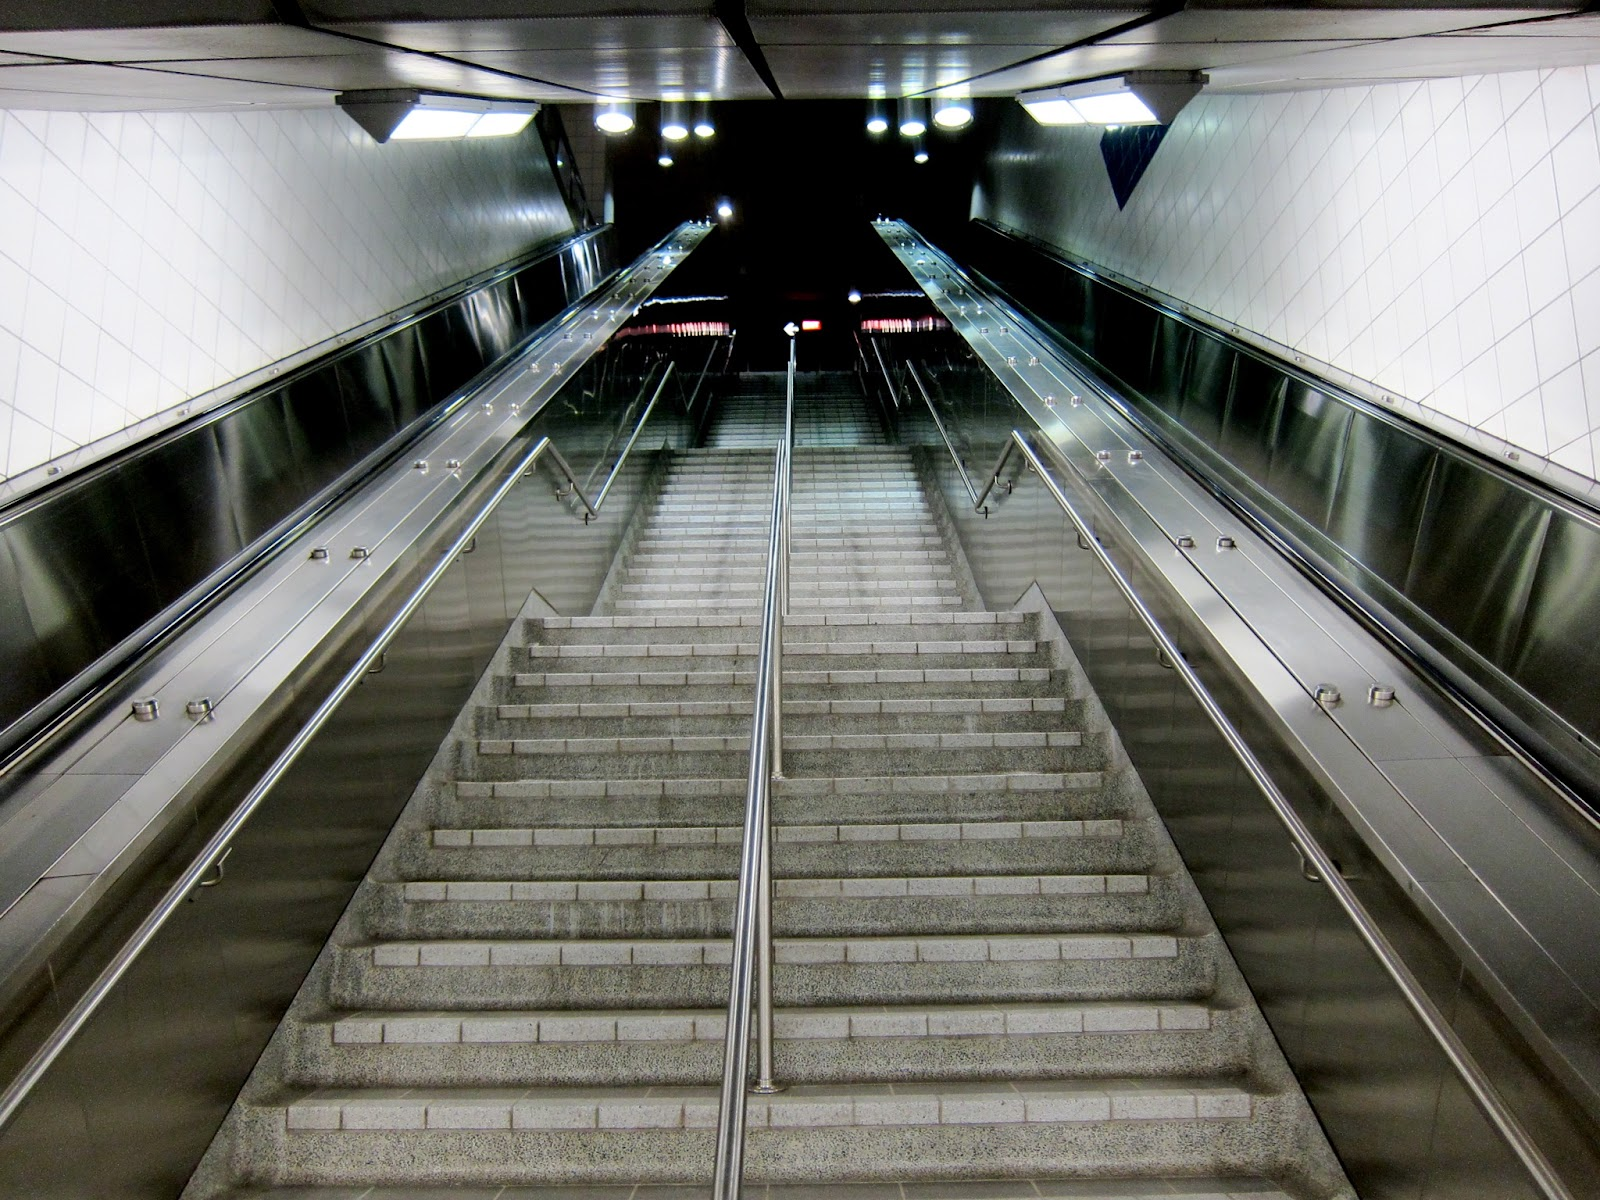 Main entrance stairwell at Bayview subway station